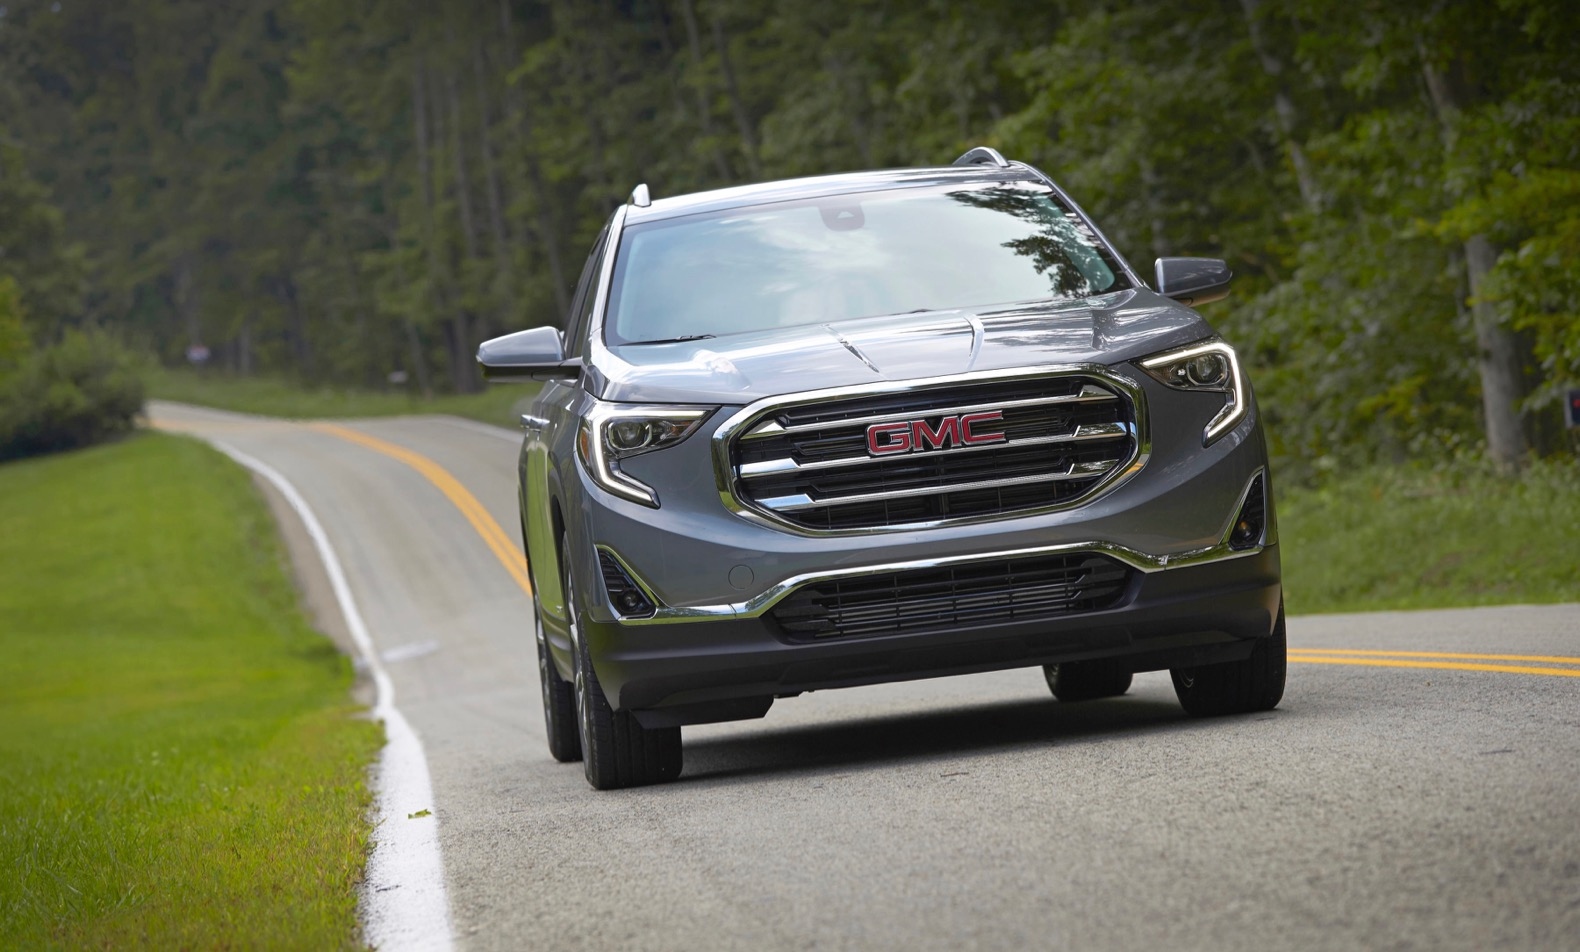 2020 GMC Terrain gets more safety tech | The Torque Report